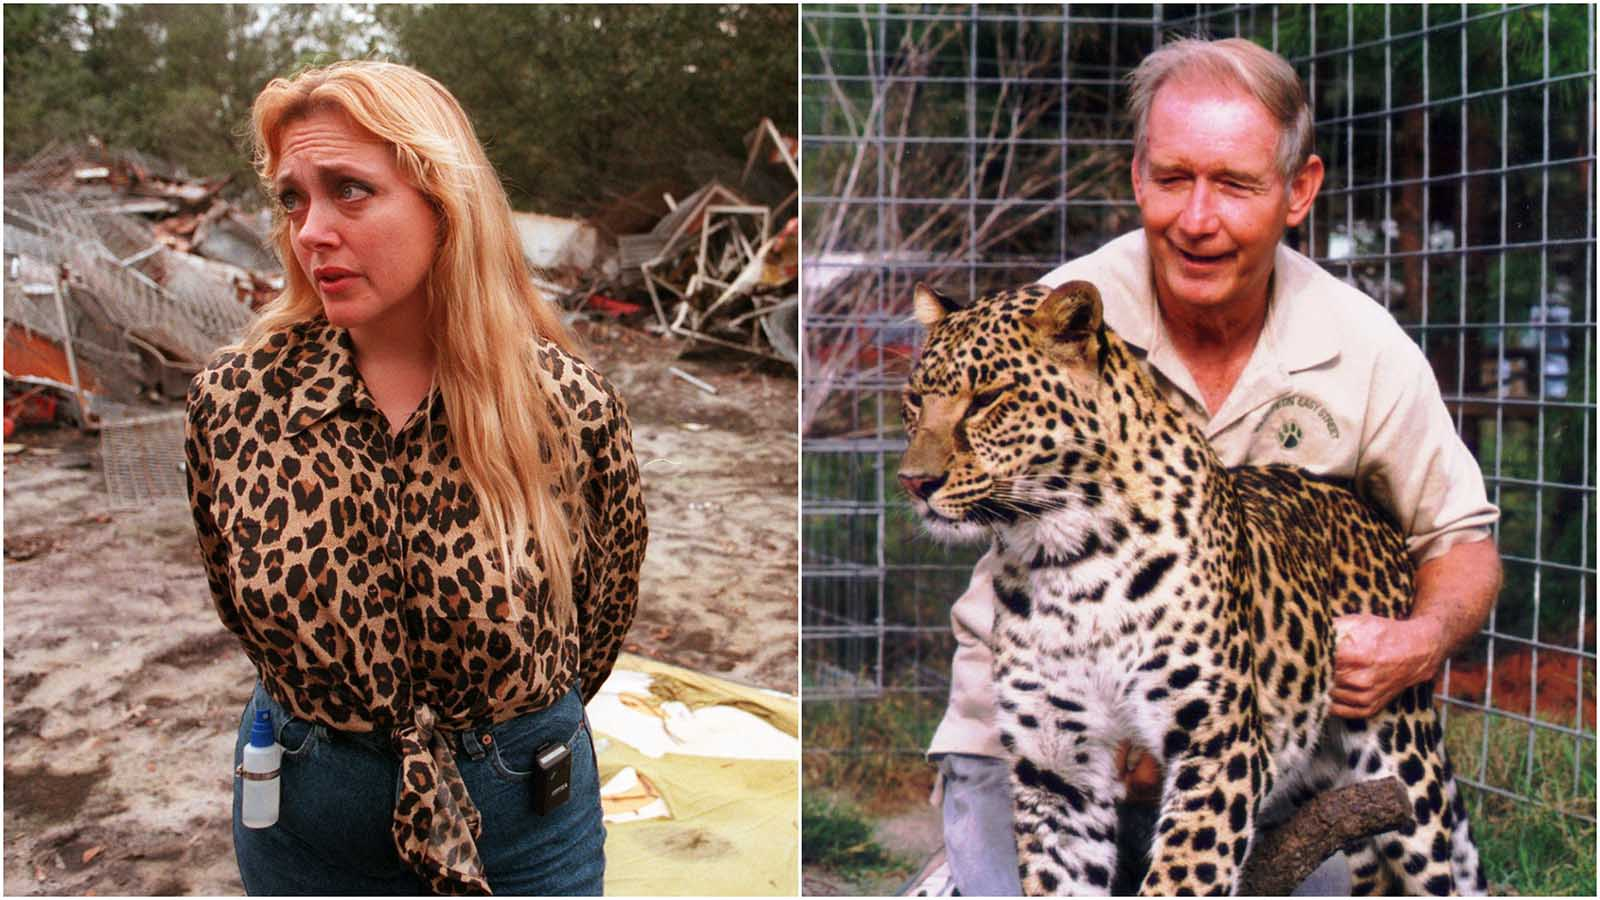 While 'Tiger King' has sold us on the theory that Carole Baskin killed her huband Don Lewis, there's more than meets the eye with this story.